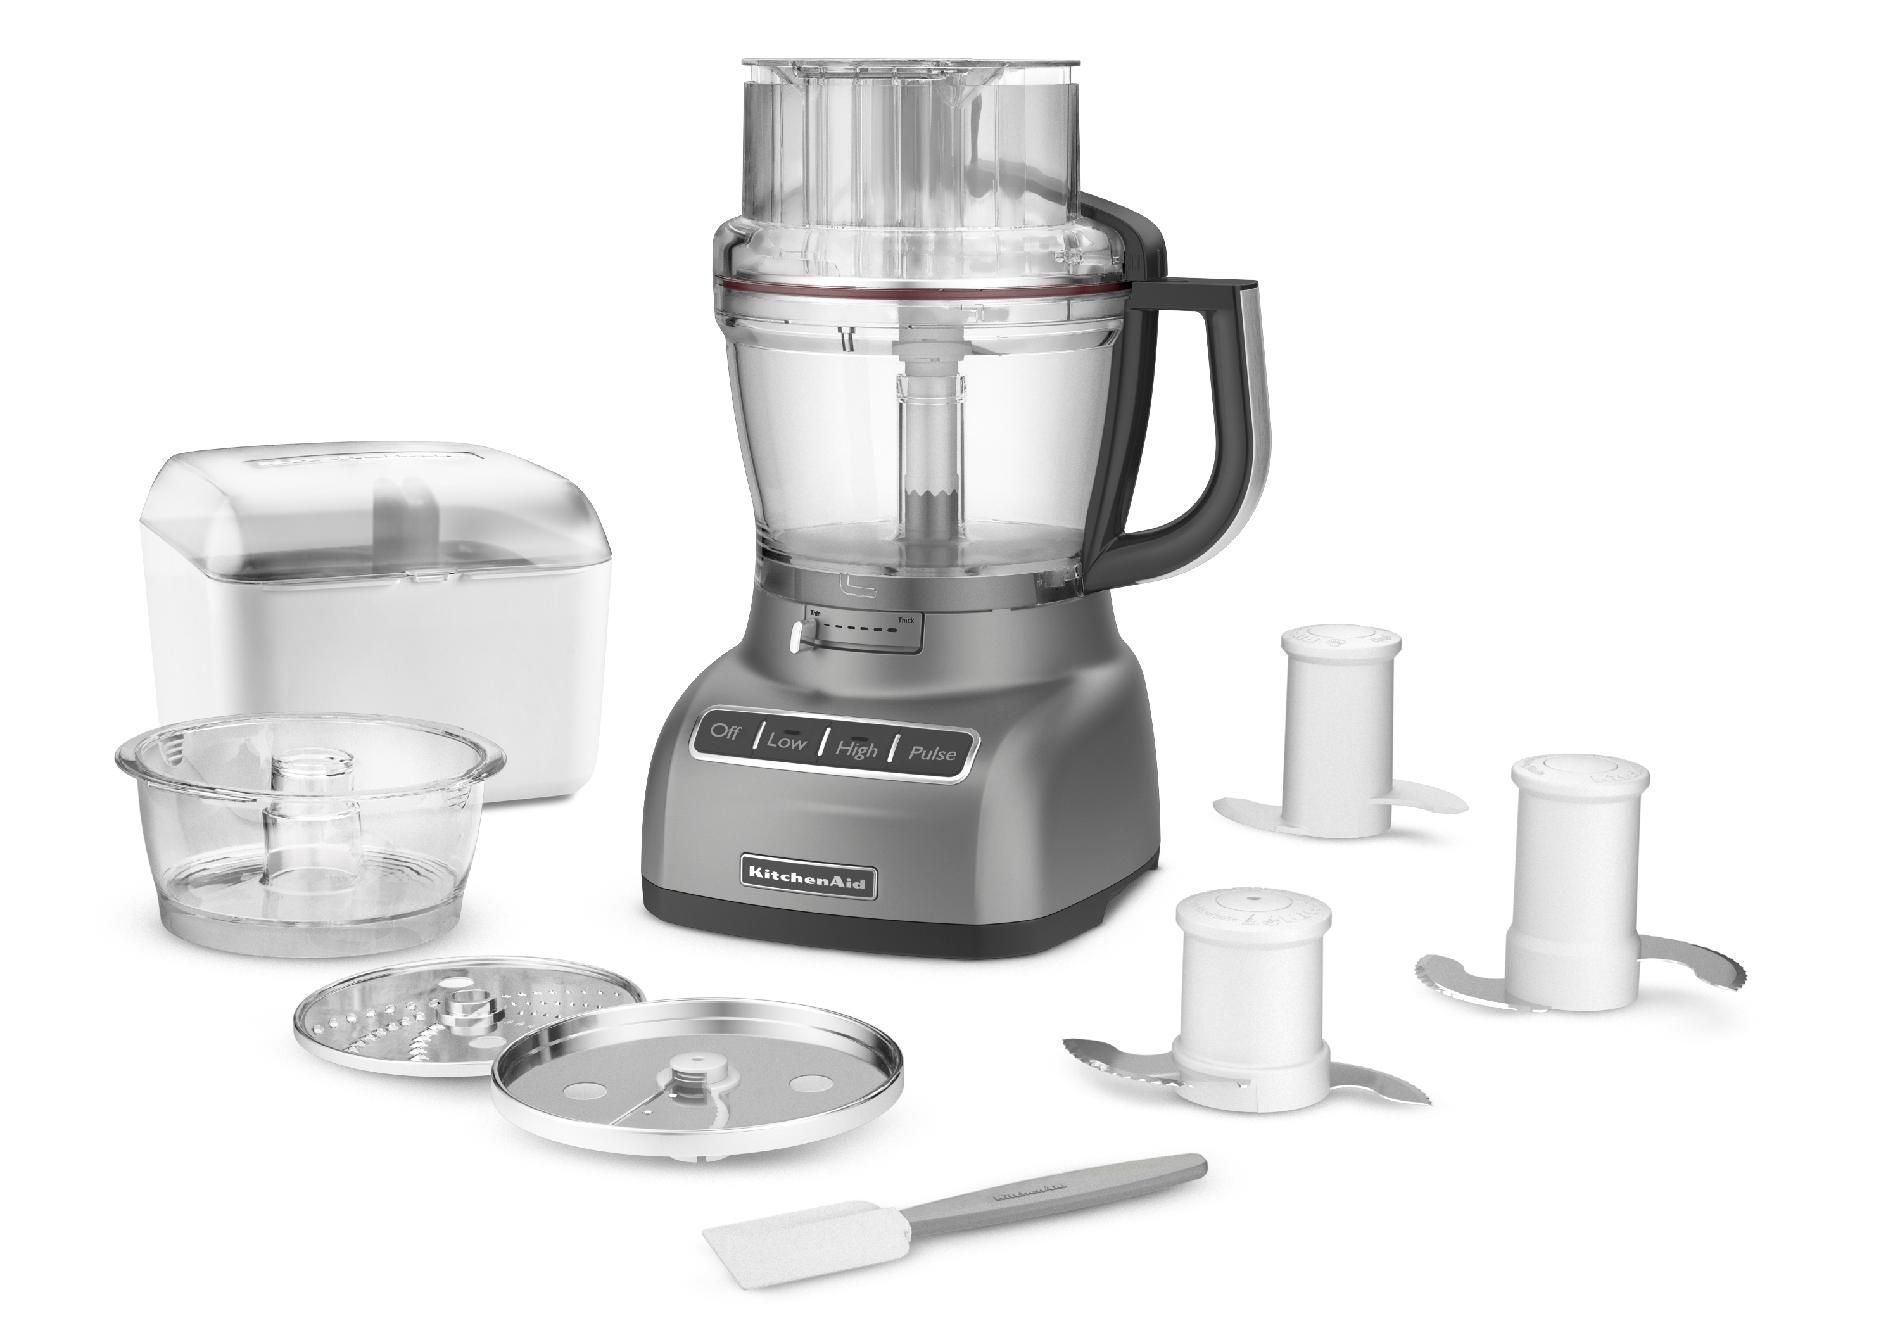 KitchenAid 13-Cup Food Processor with ExactSlice